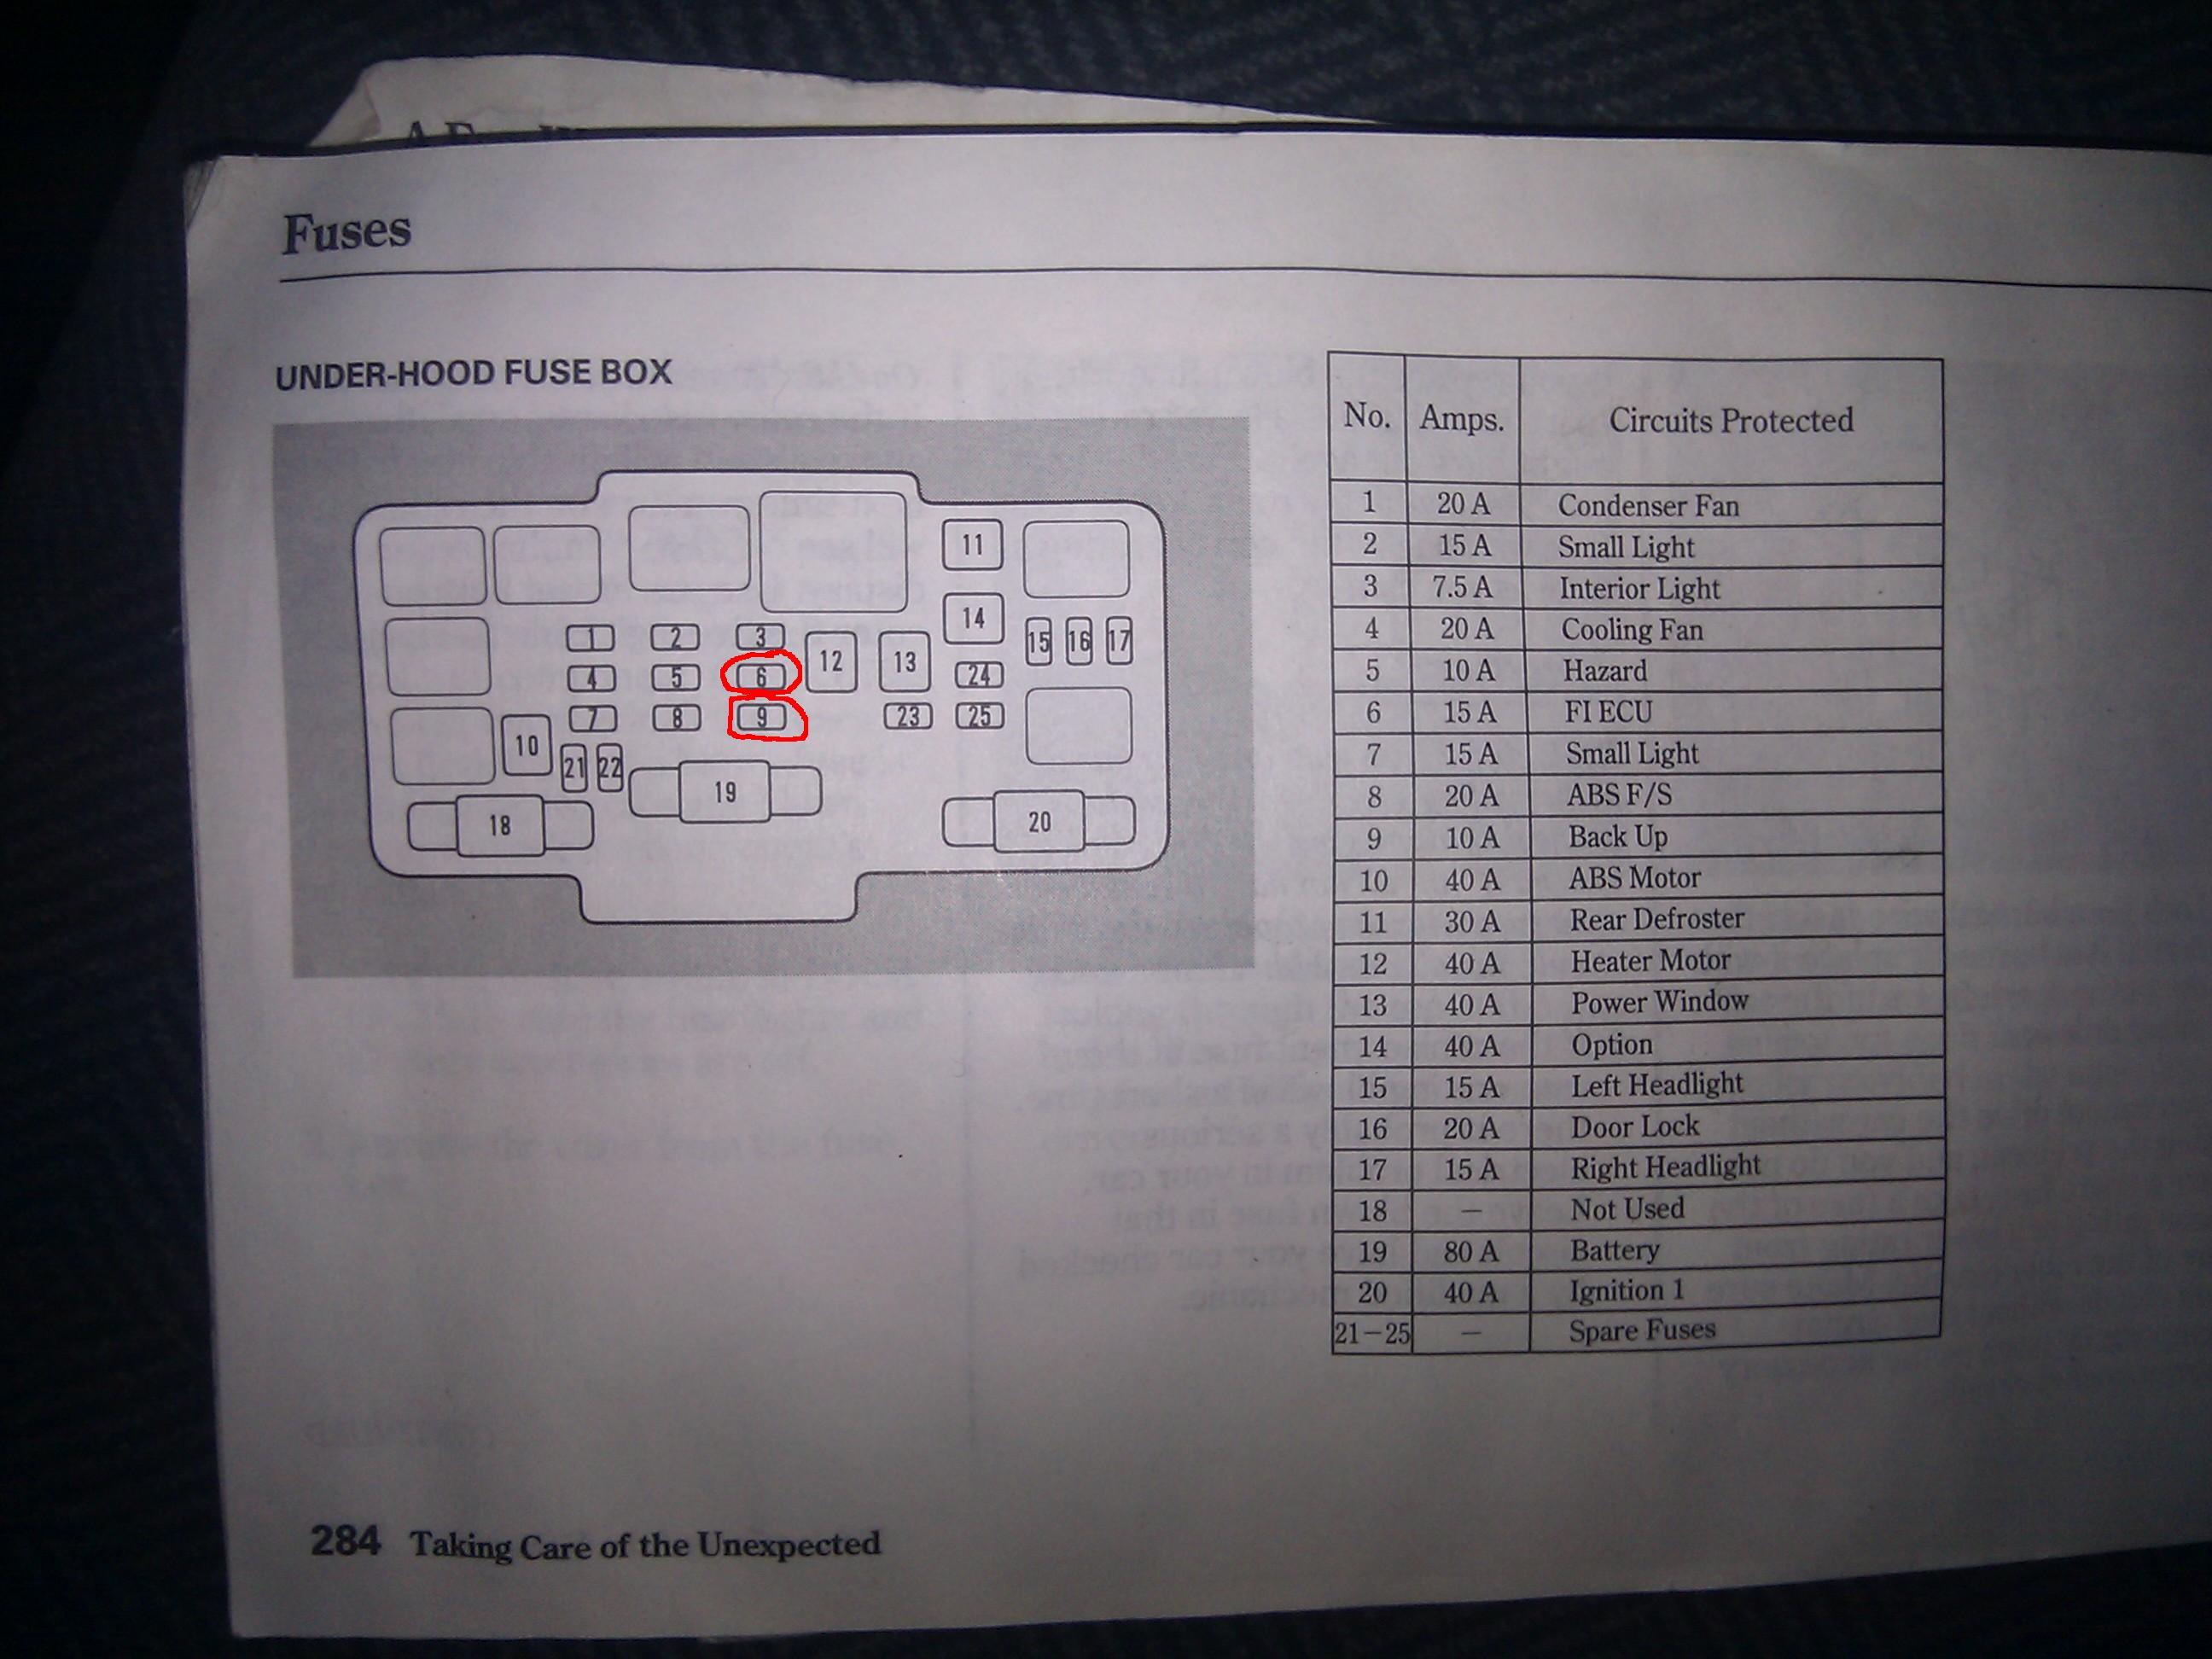 Honda Civic Fuse Box Diagram 2000 Honda Civic Fuse Box Diagram 1993